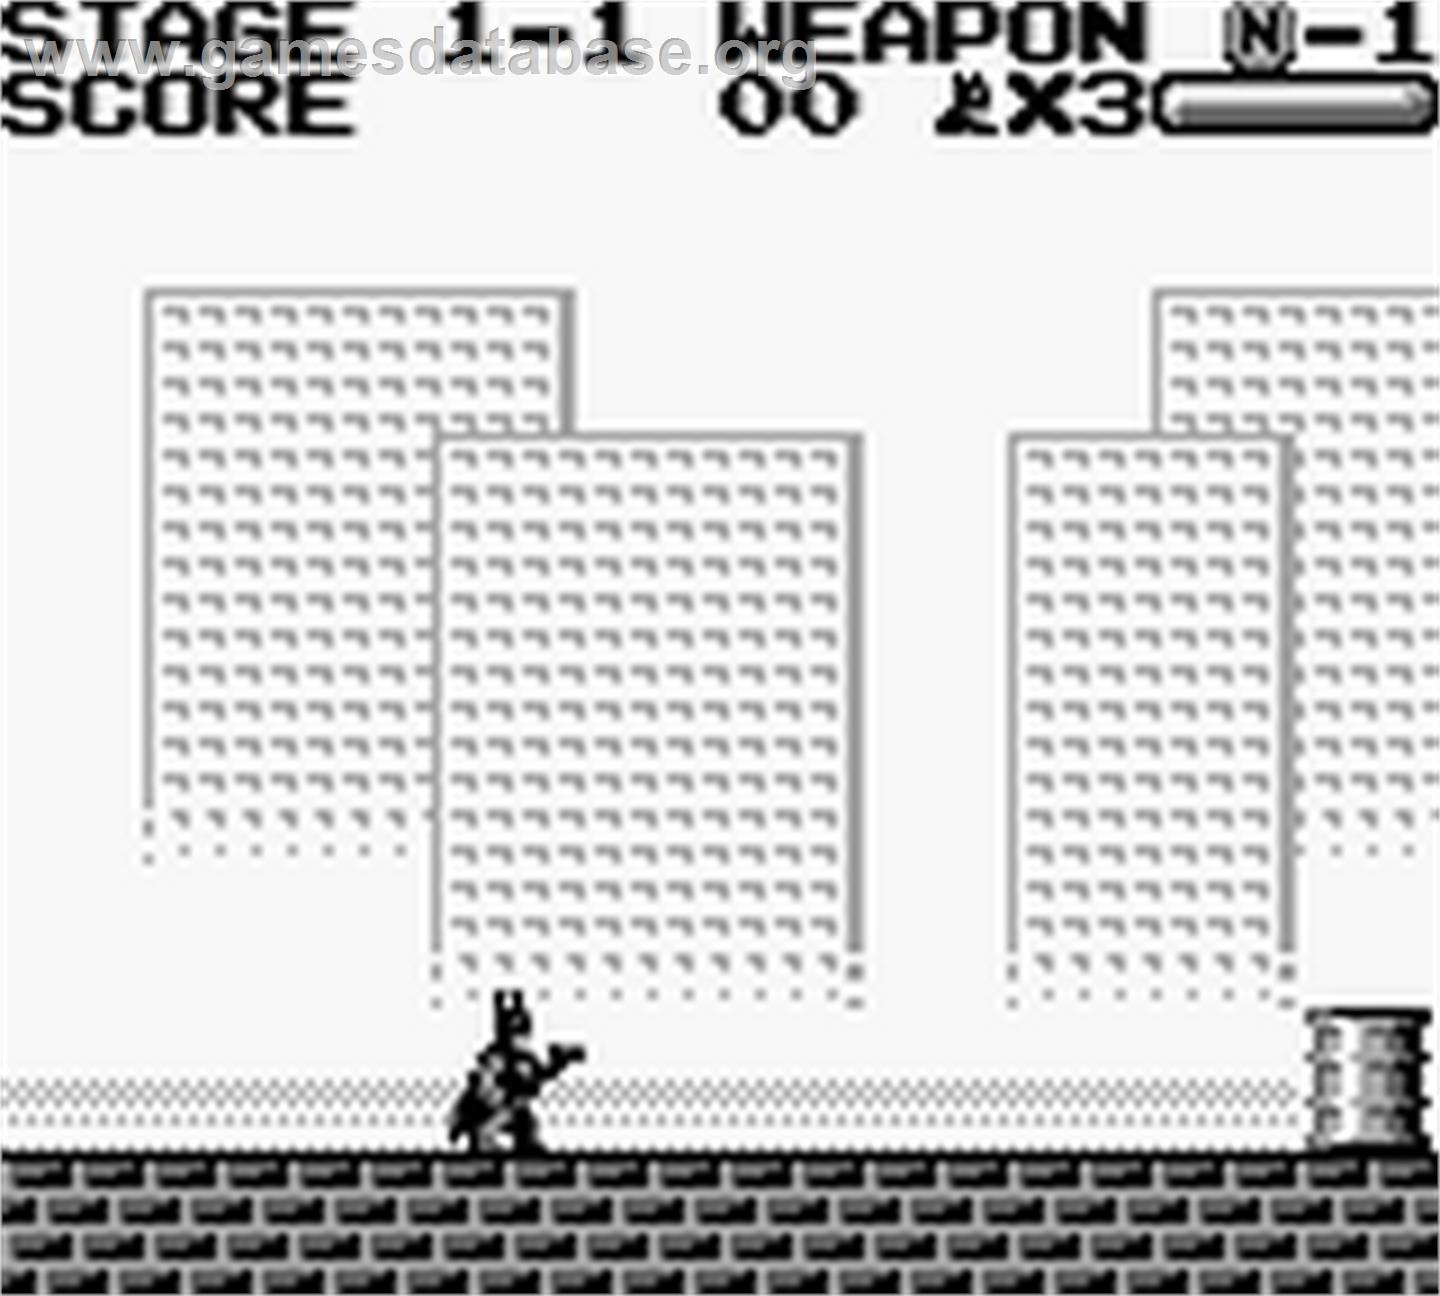 Batman Return Of The Joker furthermore N Patents as well Ishido The Way Of Stones together with Readplus besides Nes Circuit Board Diagram. on gameboy color cartridge